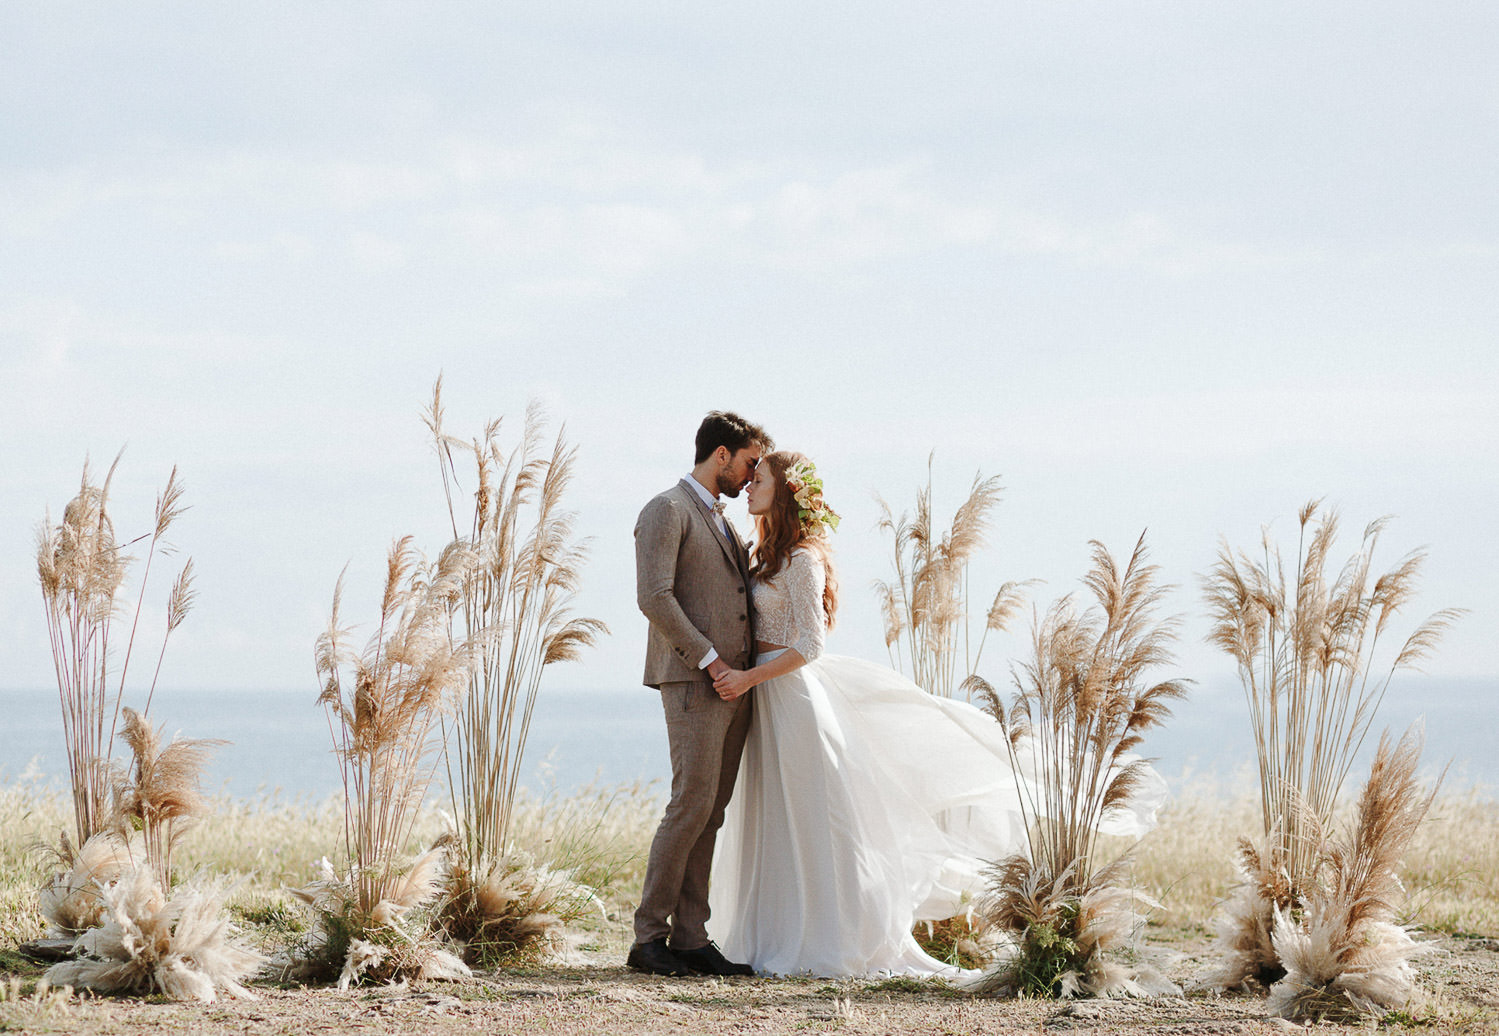 Romantic and ethereal elopement in Puglia - Photo: Camilla Anchisi - Italian destination photographer